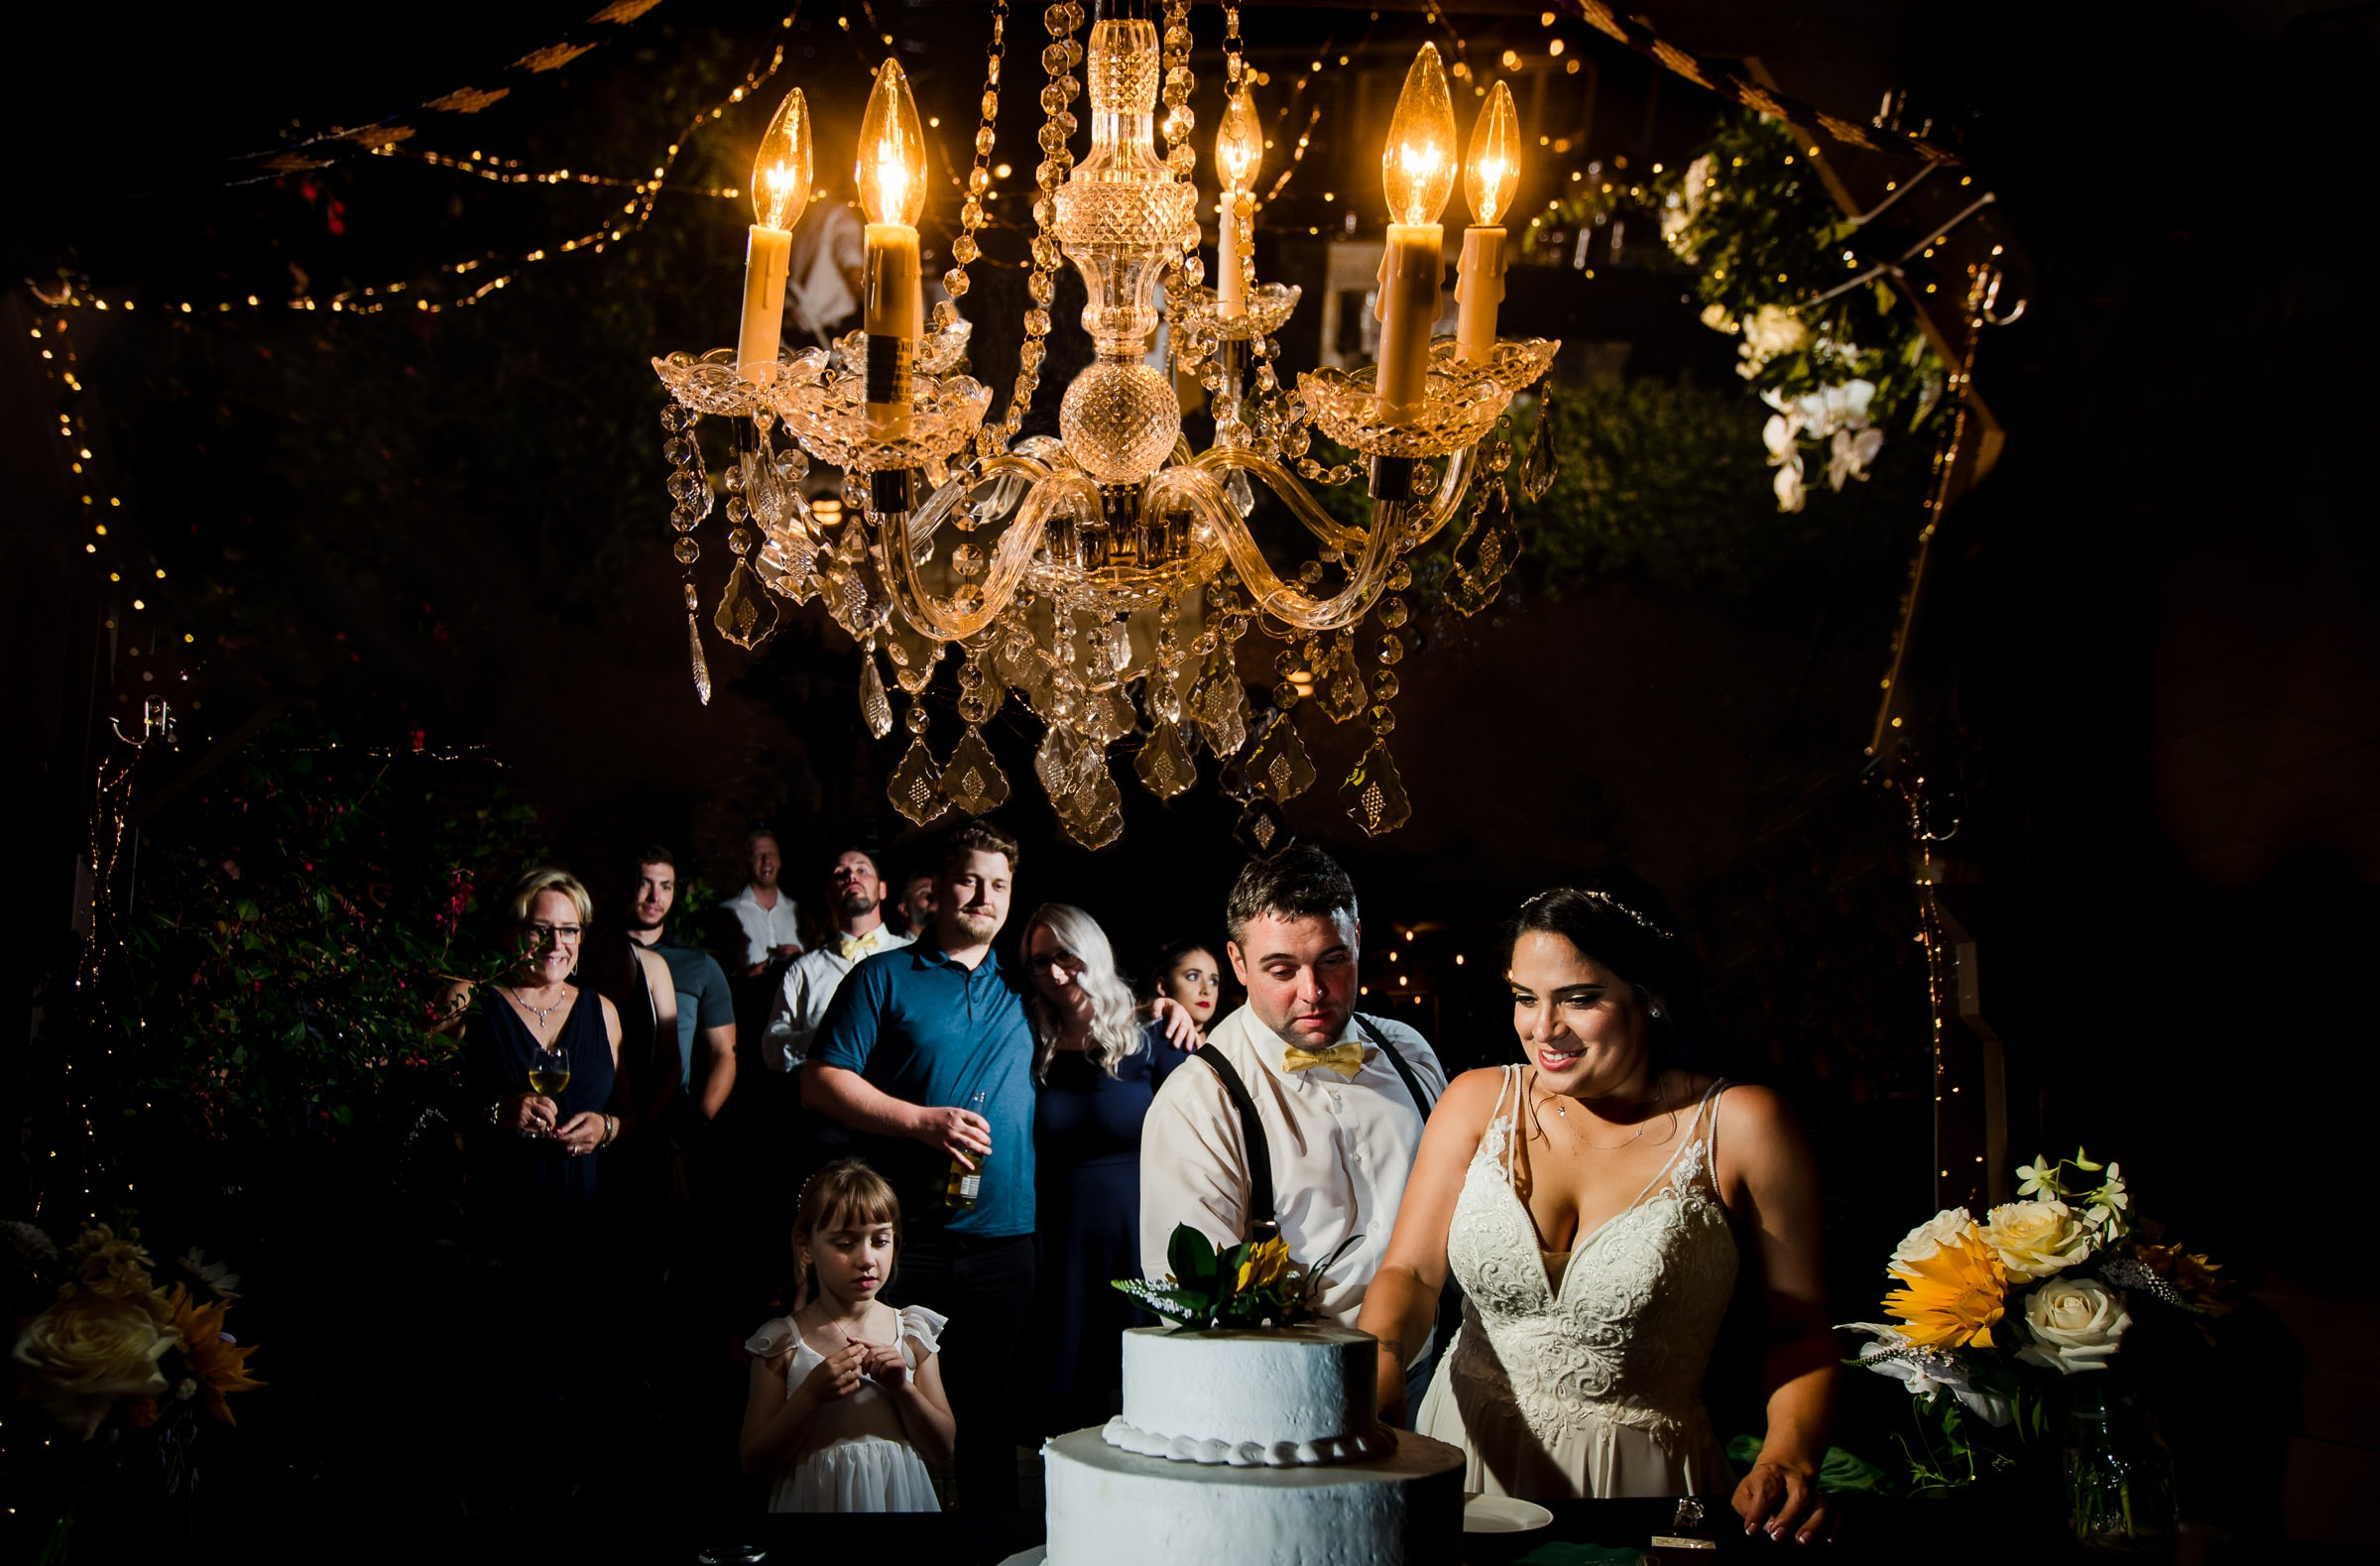 Bride and groom cutting a cake under a chandelier during their Portland Wedding elopement